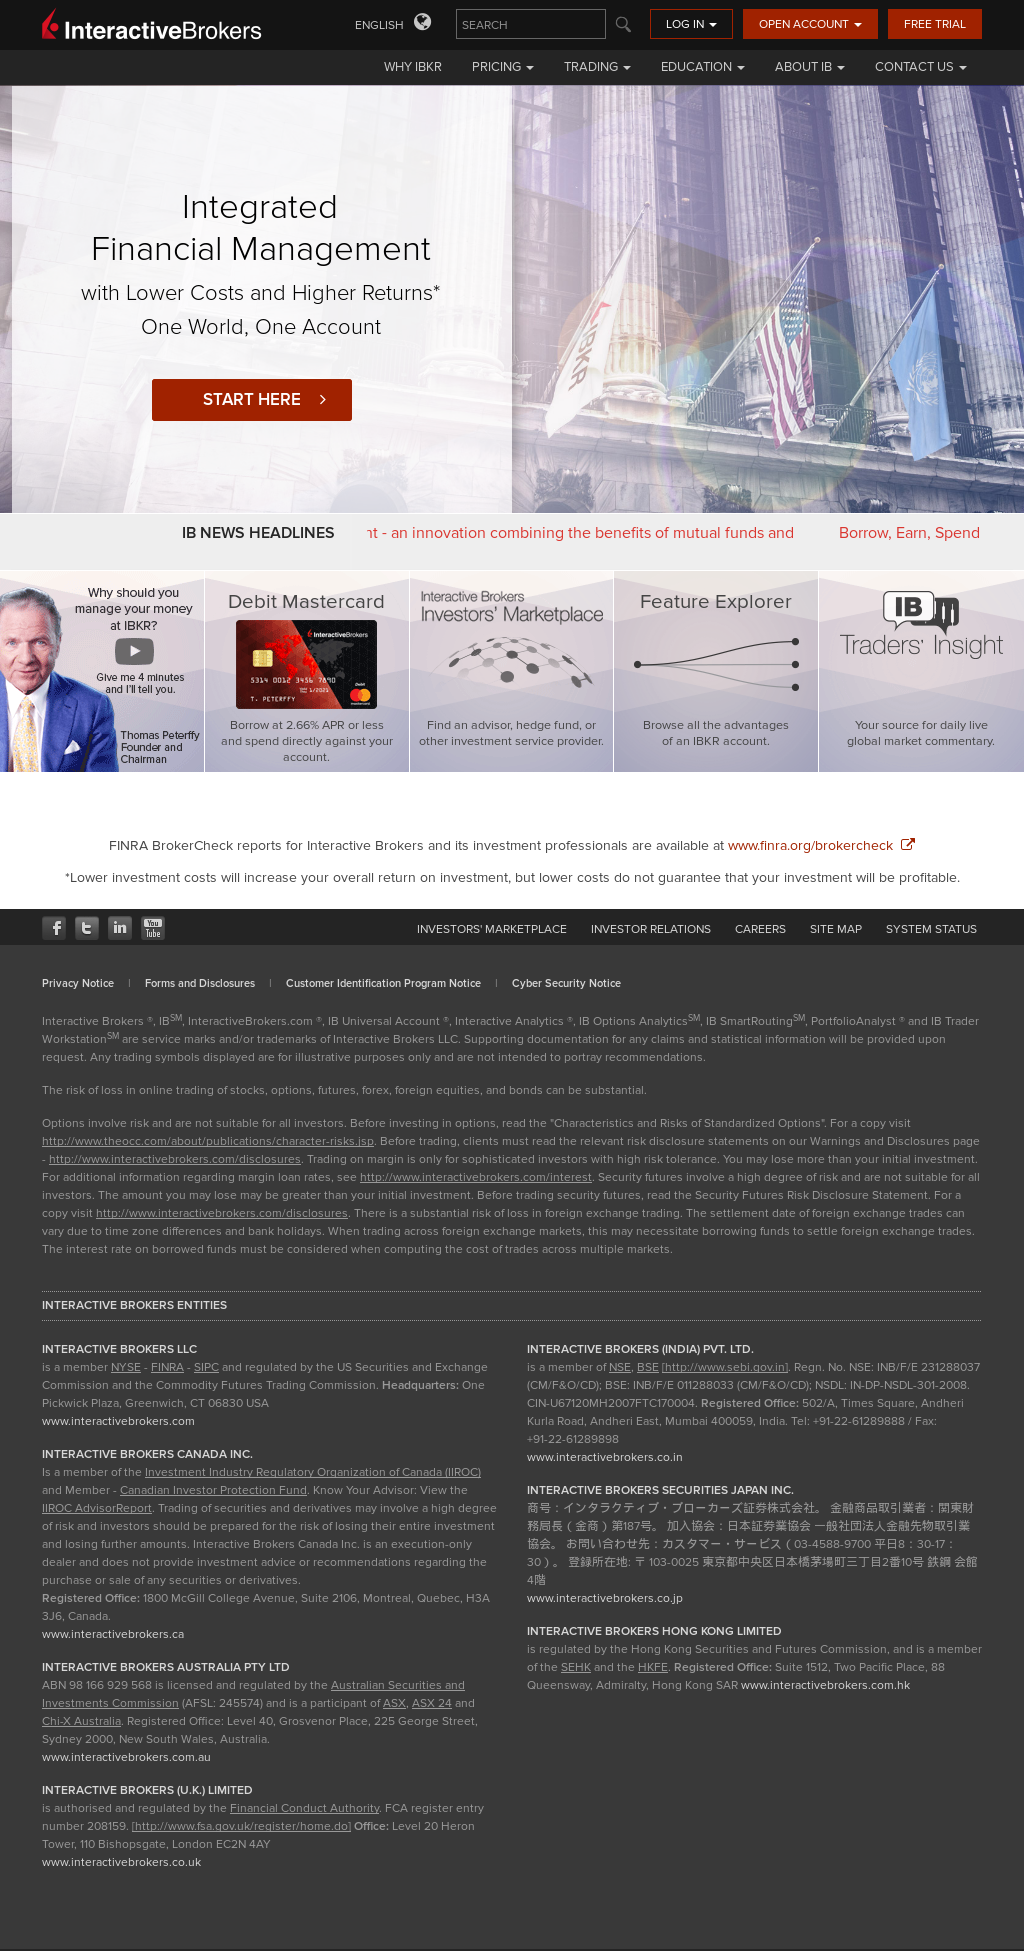 Interactive Brokers Group Competitors, Revenue and Employees